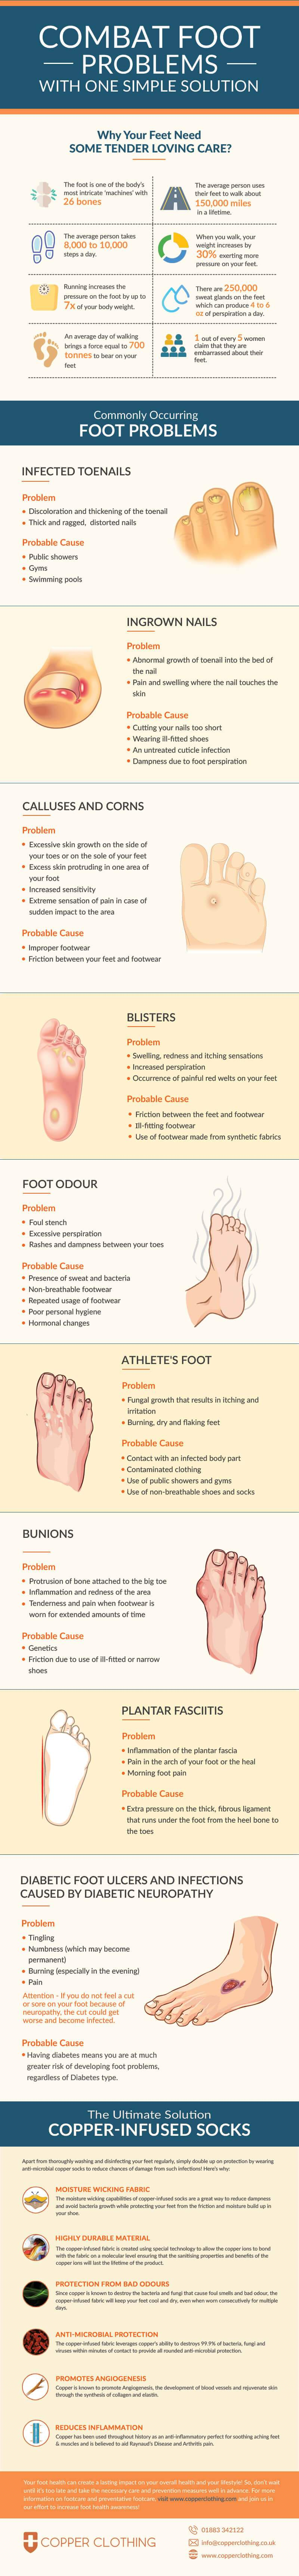 Combat Foot Problems With One Simple Solution – Infographic Portal